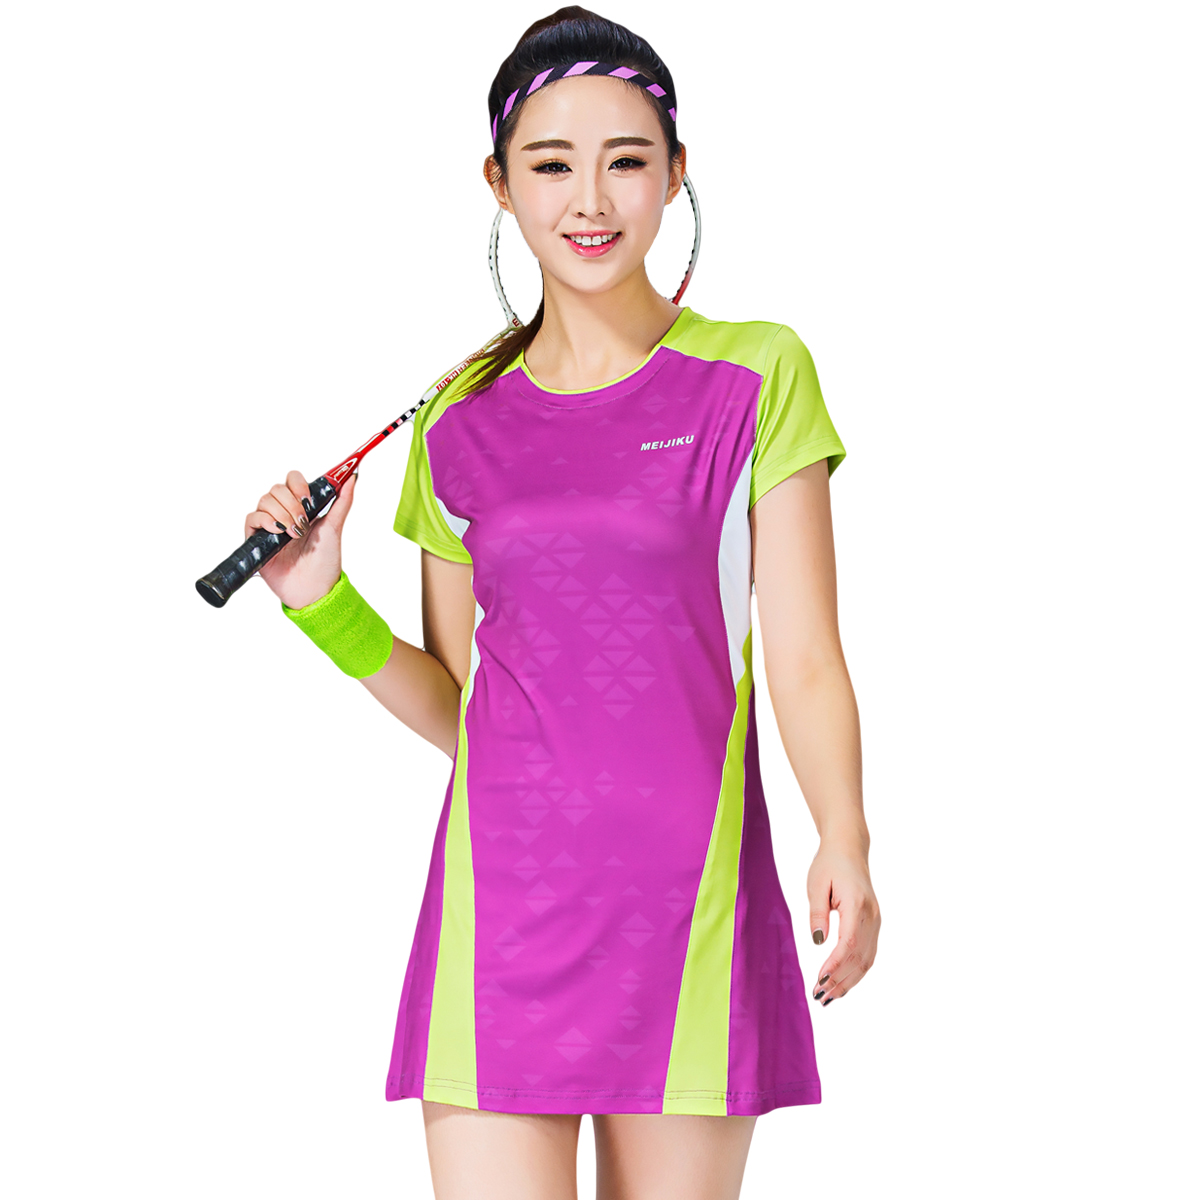 Sports Badminton Clothing Tennis Dresses Women's Dresses Quick Dry Slim With Safety Short